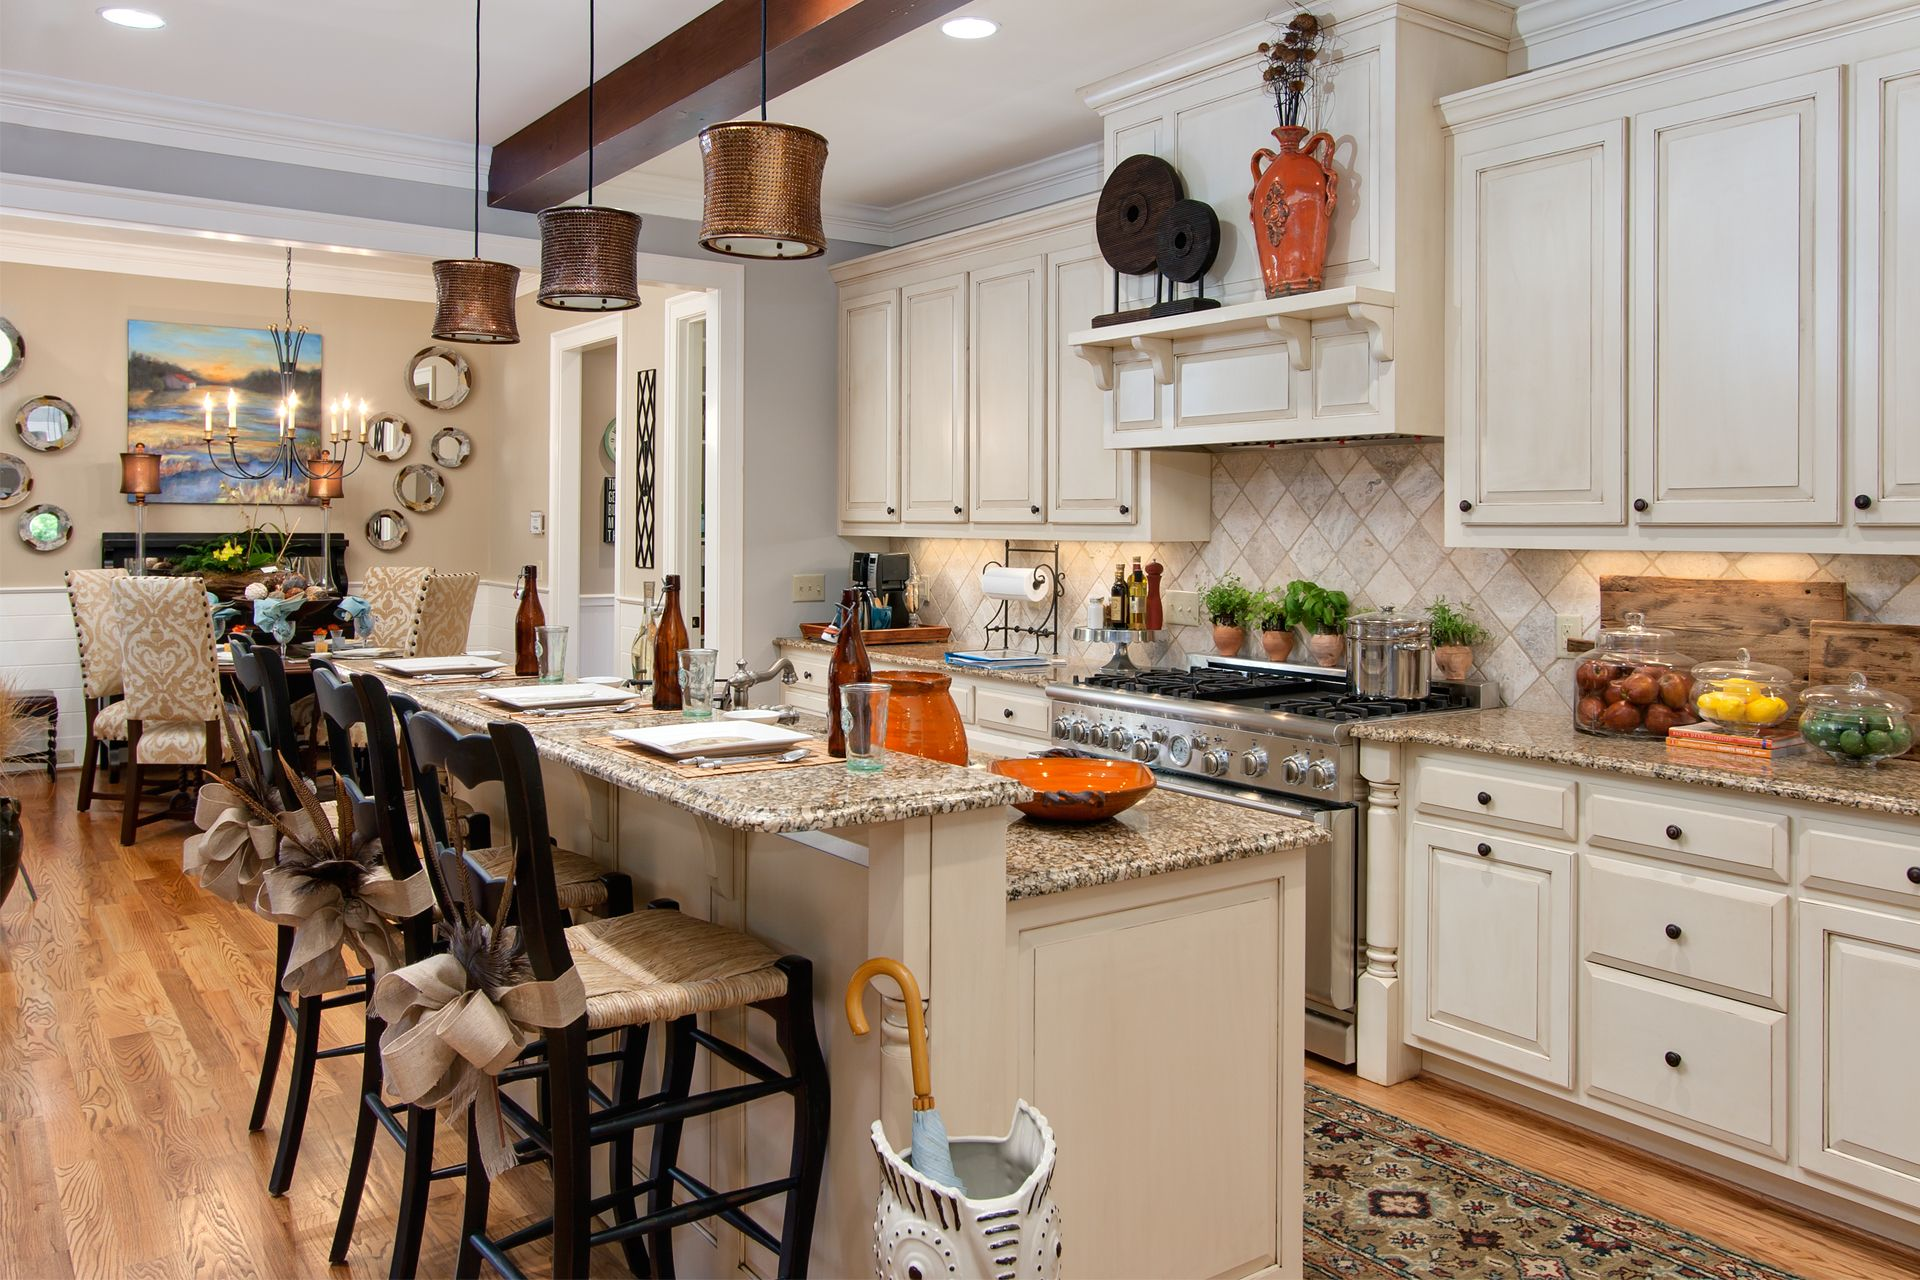 Architecture Antique White Color Of Island Also Cabinetry Has Adorable Small Kitchen Living Room Design Ideas Review